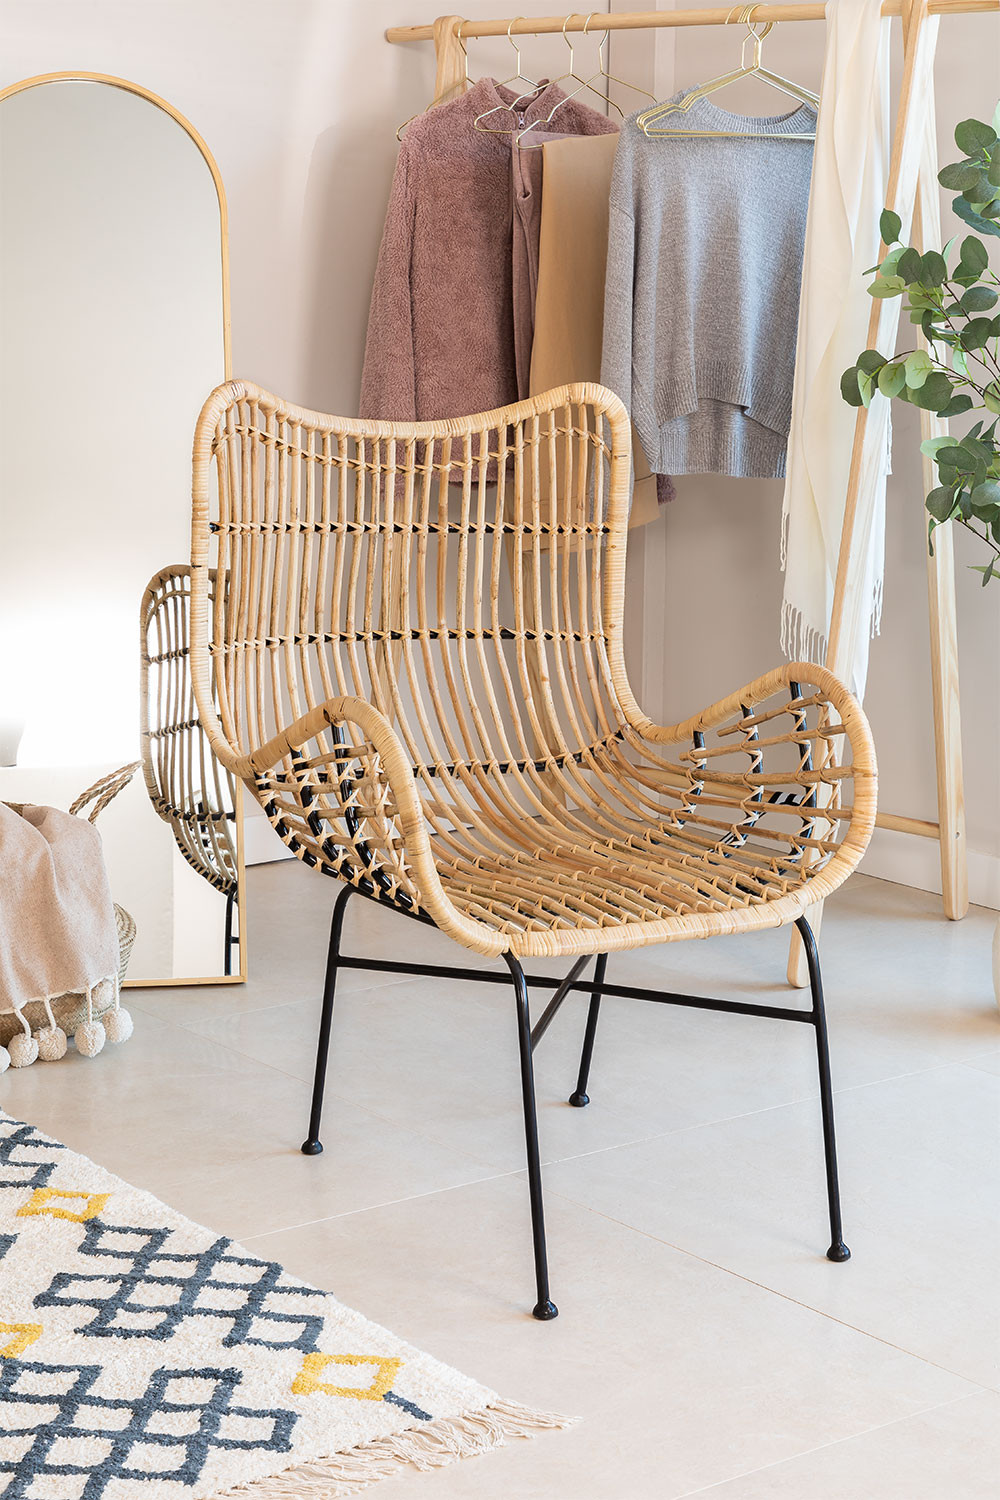 Chair in Rattan Domba, gallery image 1